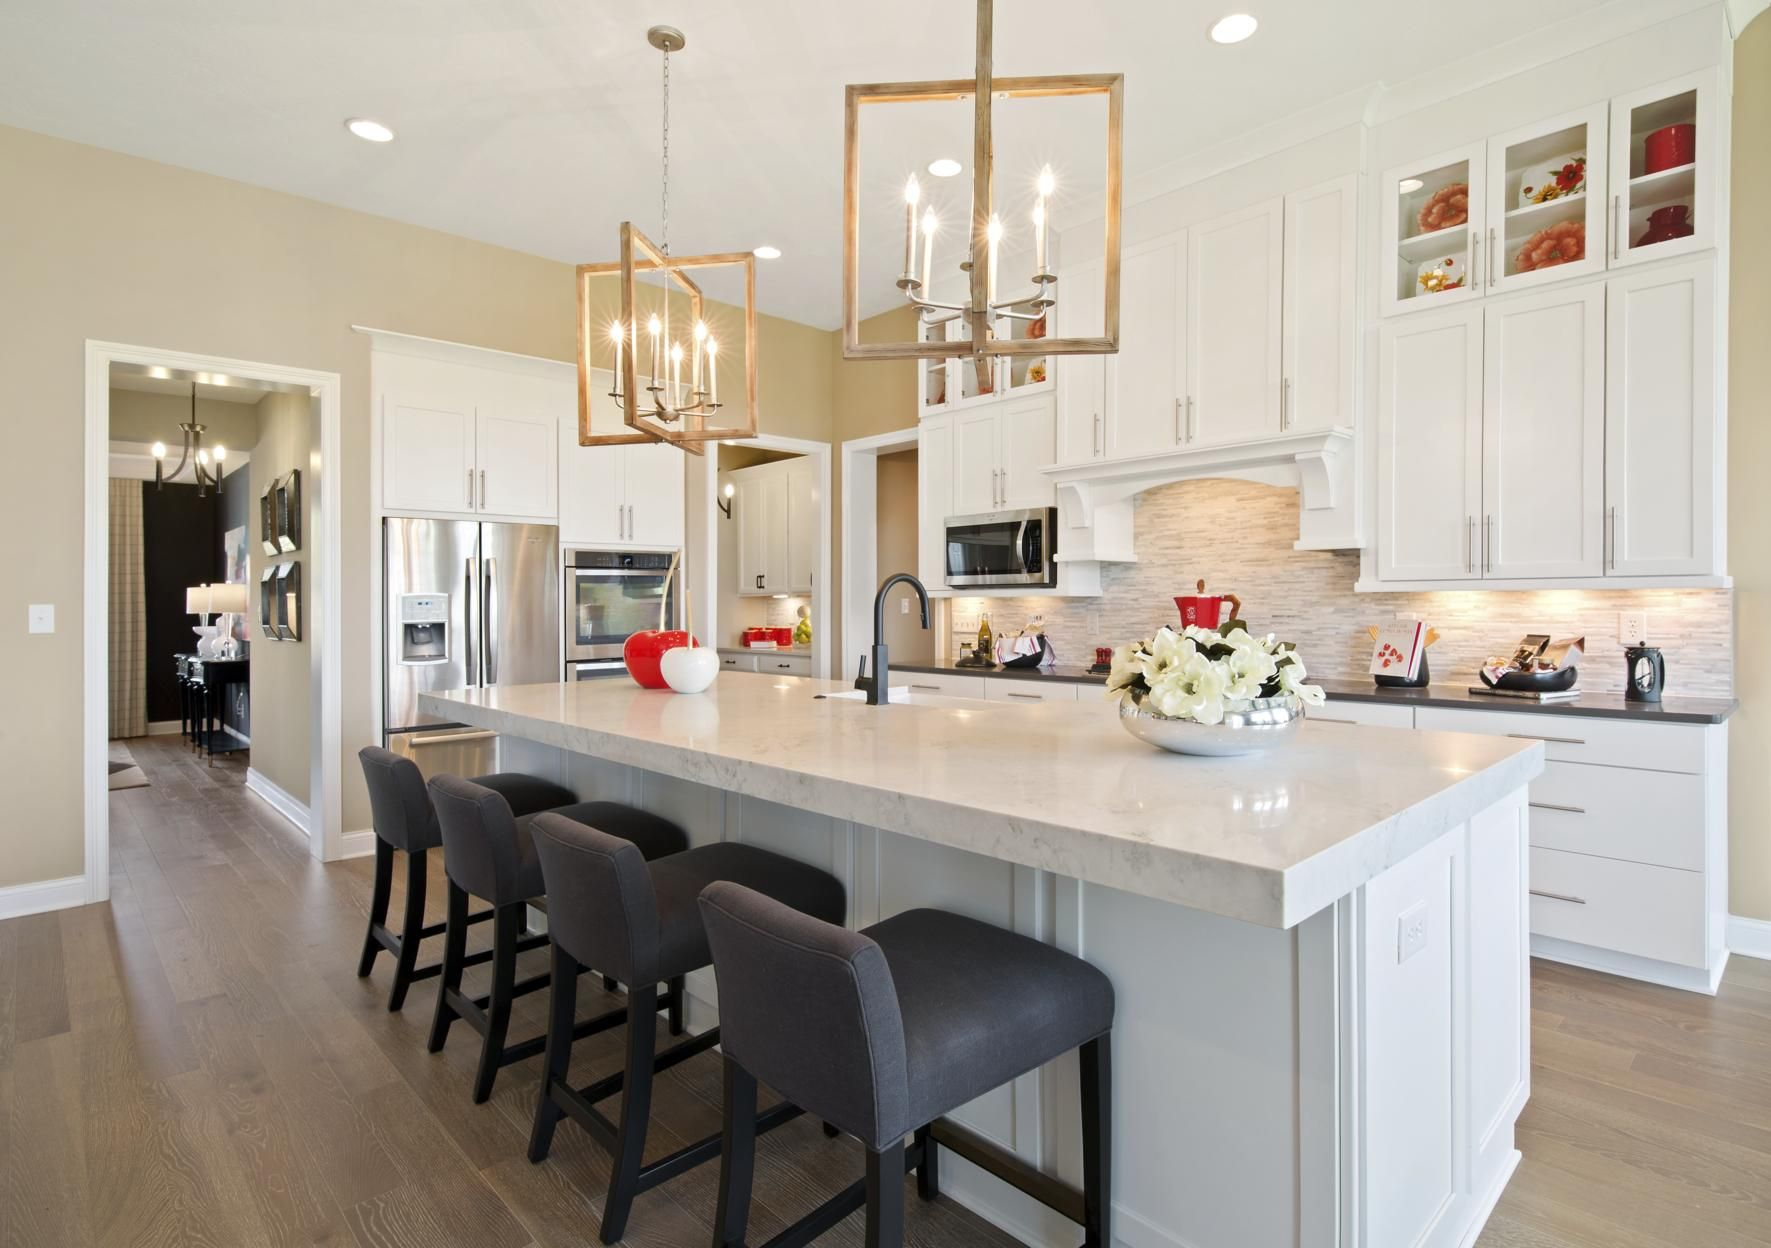 Crestwood Kitchen | Indianapolis, IN - Drees Homes | Pinterest ...